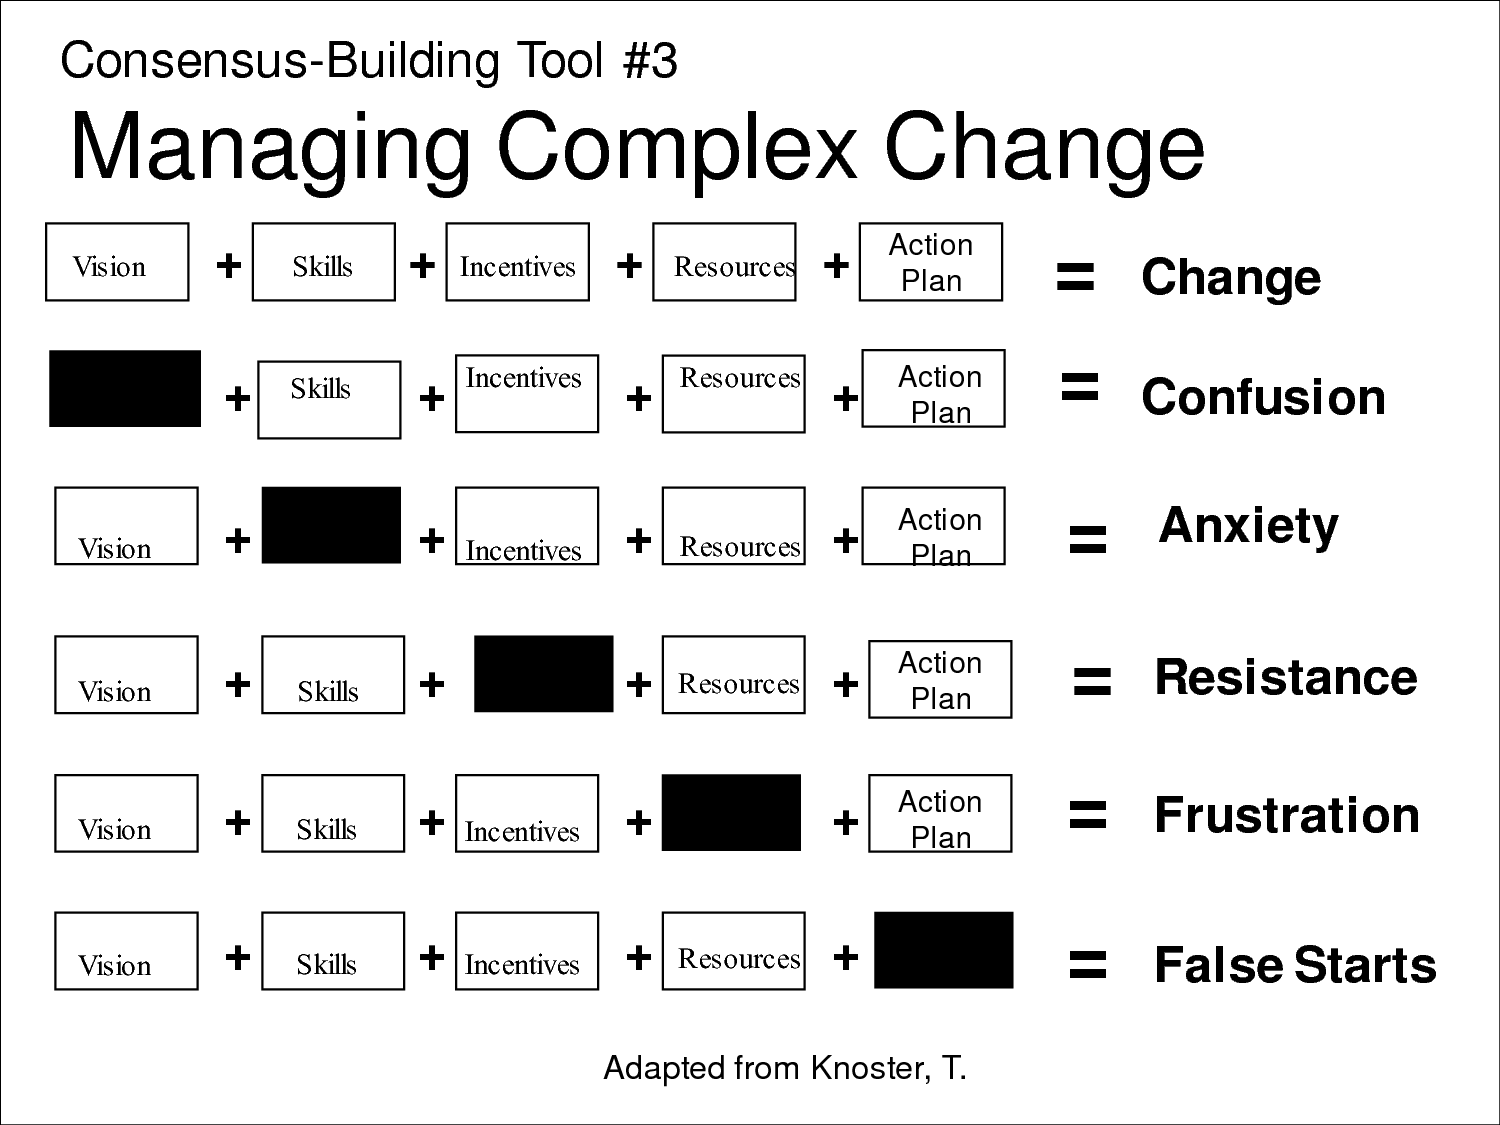 Managing Complex Change Matrix